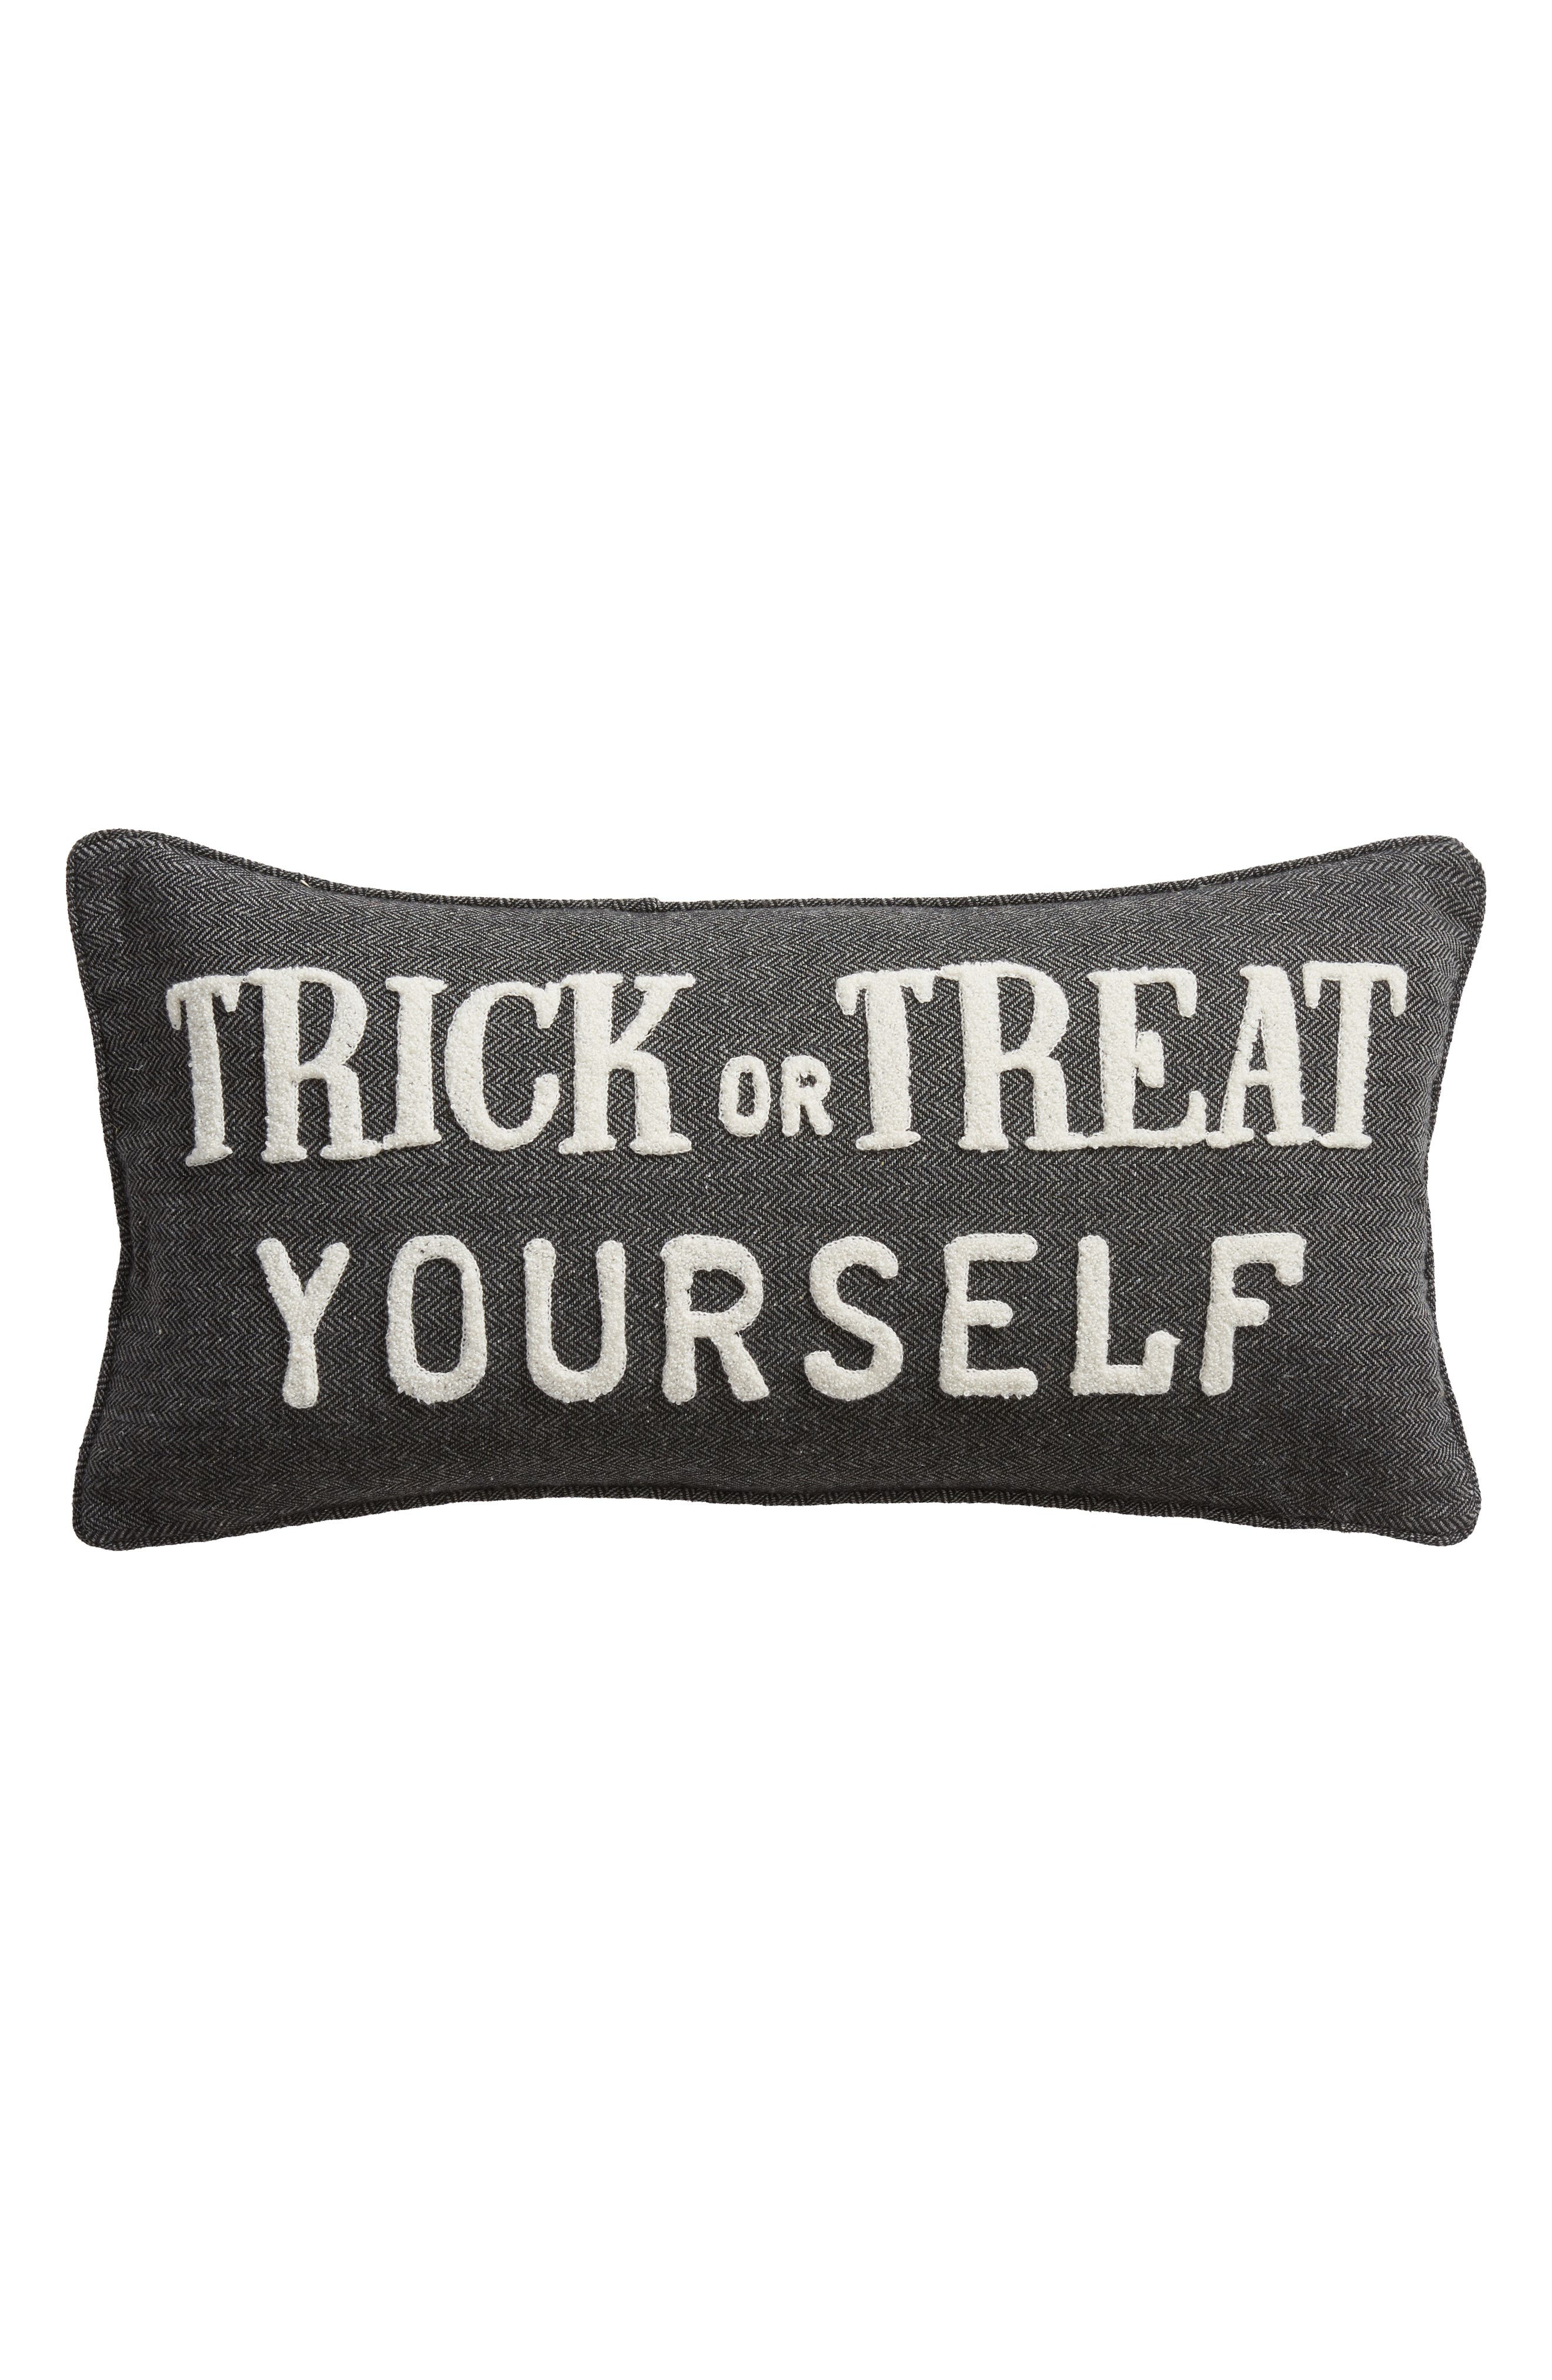 Trick or Treat Yourself Accent Pillow,                         Main,                         color, CHARCOAL